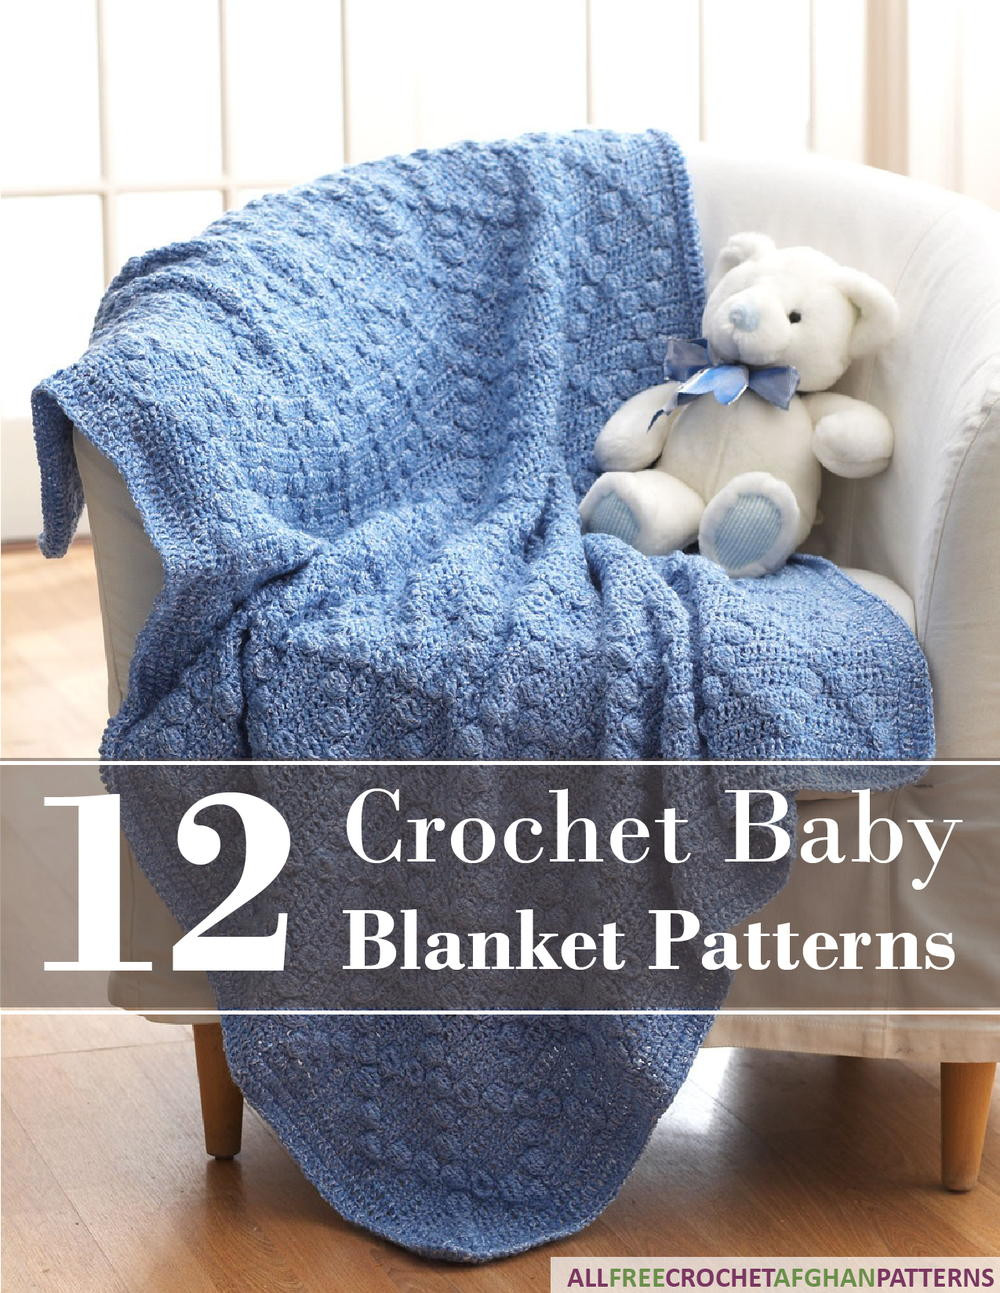 Baby Boy Crochet Blanket Patterns Elegant 12 Crochet Baby Blanket Patterns Free Ebook Of Baby Boy Crochet Blanket Patterns Best Of 10 Beautiful Baby Blanket Free Patterns